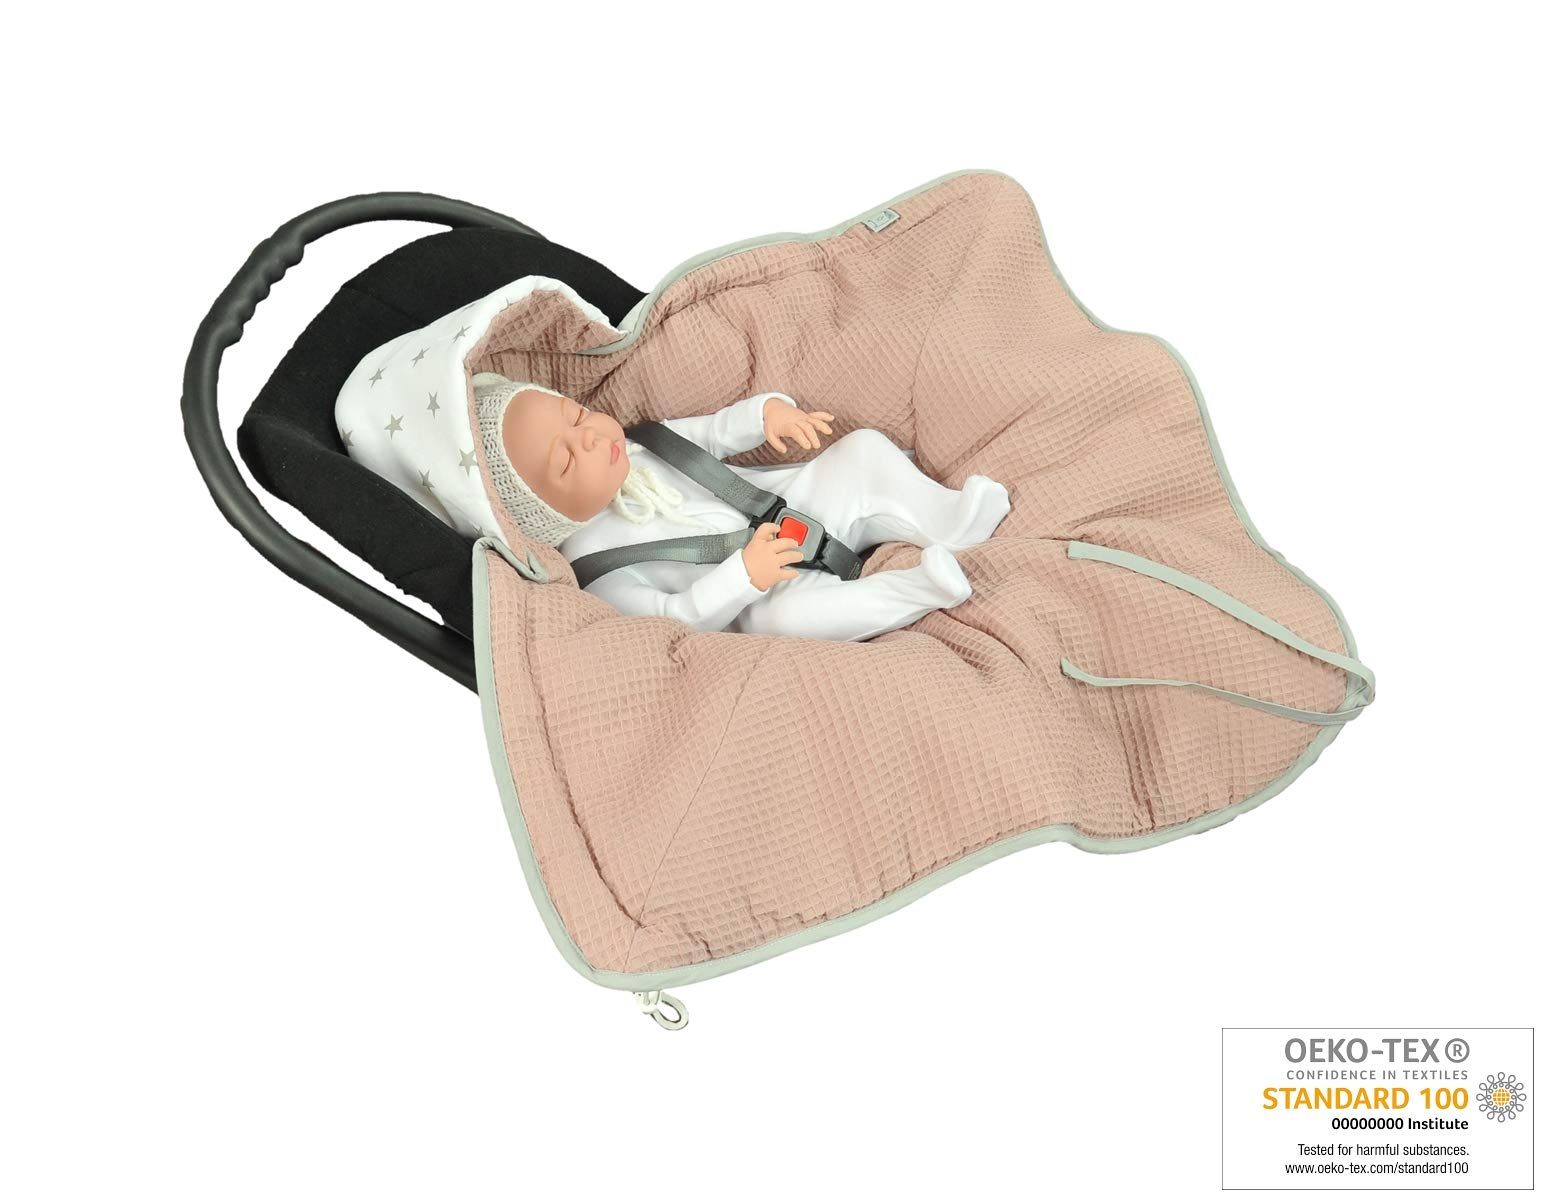 MoMika Swaddling Blanket | Bunting Bag I Universal Fit for Car Seat | Stroller | Buggy or Baby Bed| 100% Cotton (Light Brown-Stars)